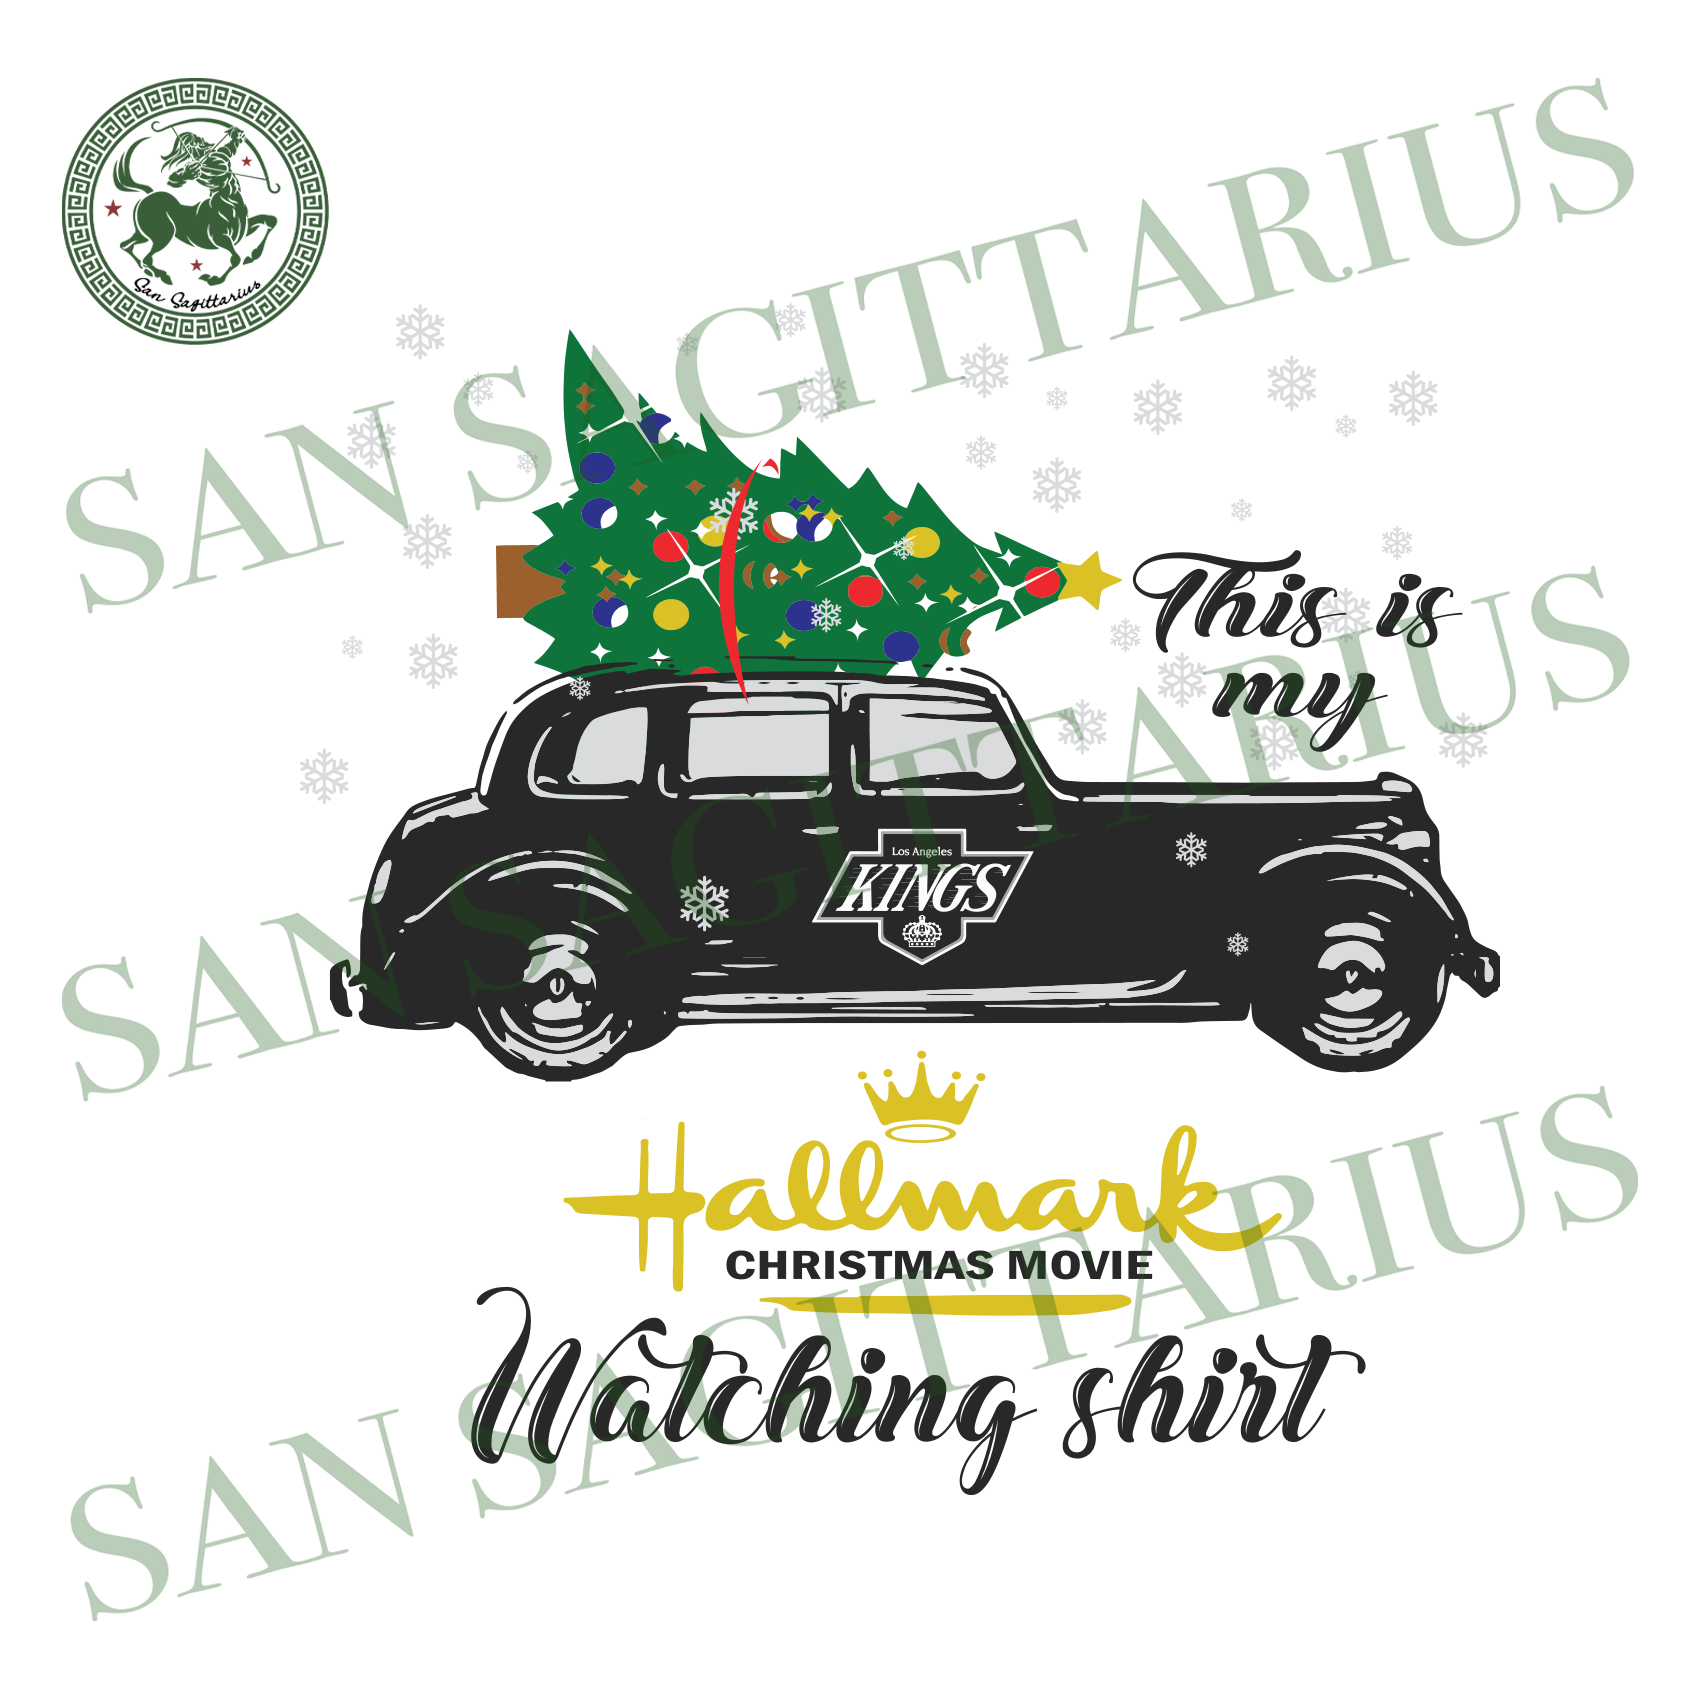 Los Angeles Kings This Is My Hallmark Christmas Movie Watching Shirt, Sport Svg, Christmas Svg, Los Angeles Kings Svg, NHL Sport Svg, Los Angeles Kings NHL Svg, Los Angeles Kings NHL Gift, Ho